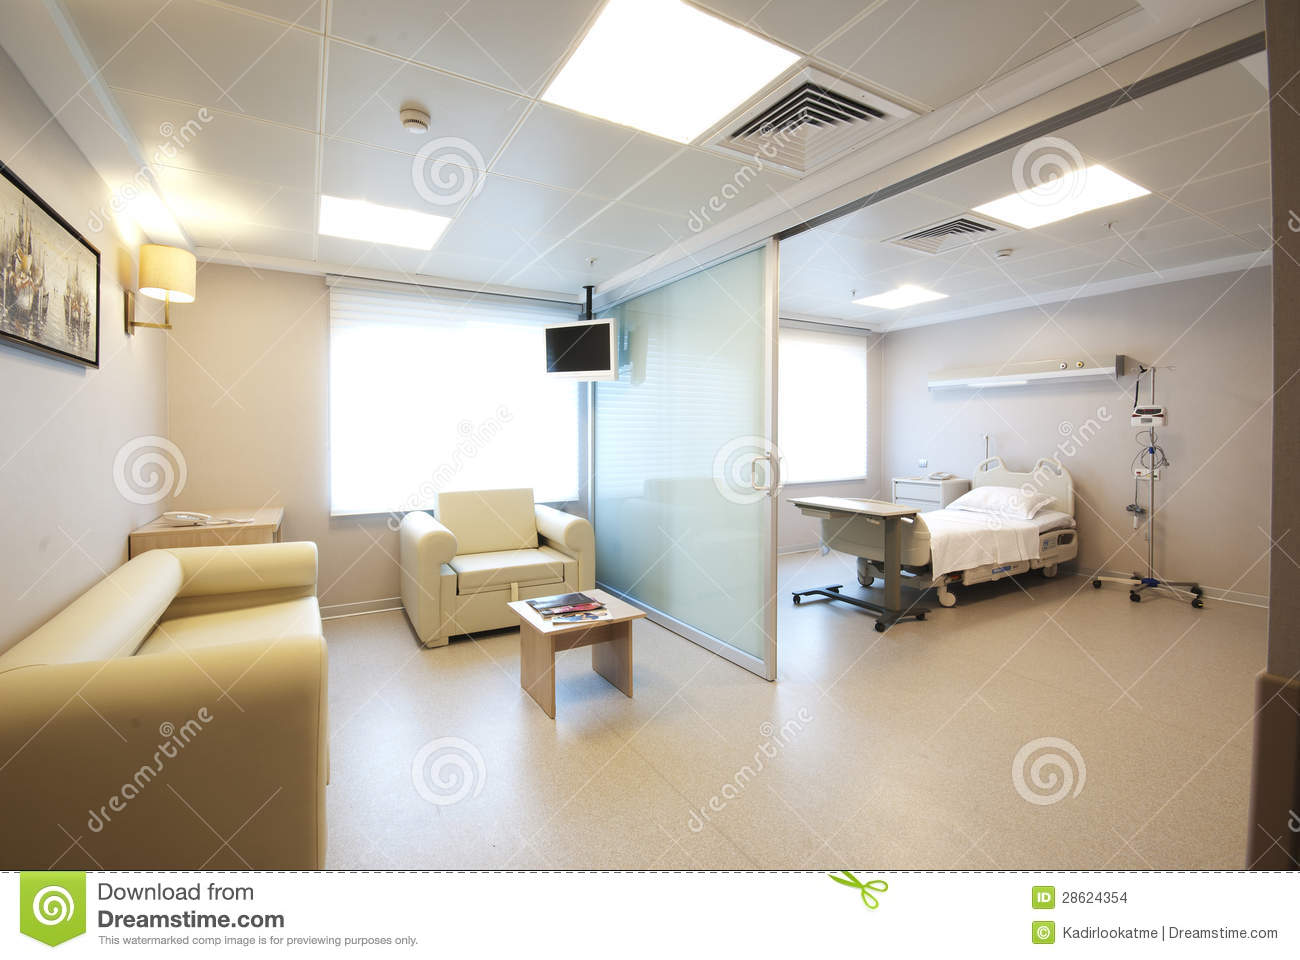 private hospital room interior stock images   image 28624354